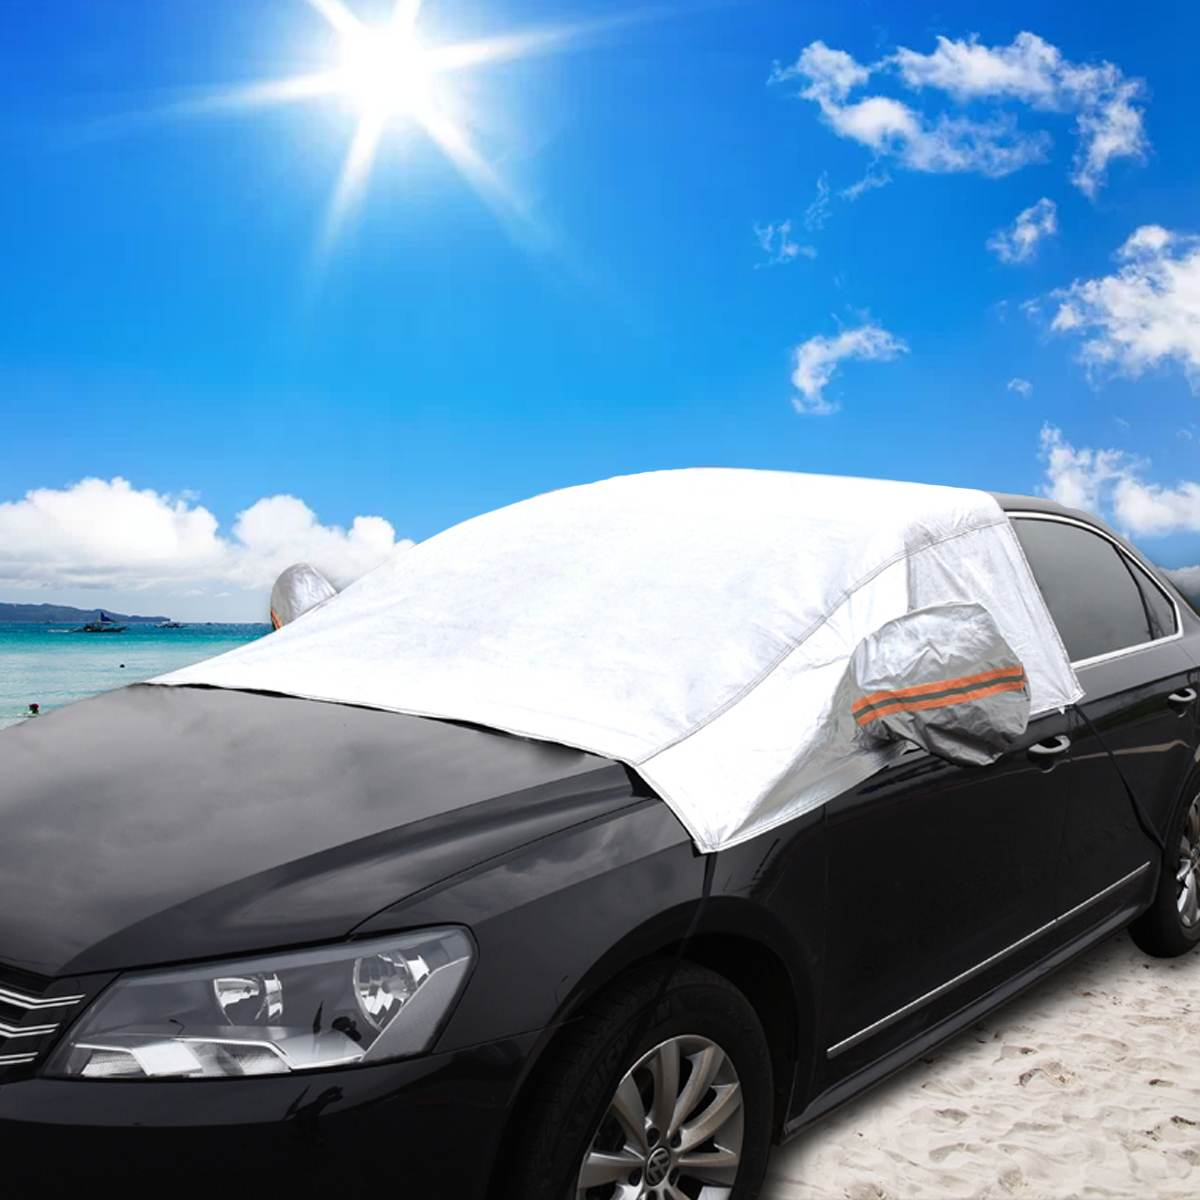 cheapest Car Windscreen Cover with Mirrors Snow Cover Winter Car Windshield Cover Sun Shade Protector L XL for Van SUVs Trucks RVs